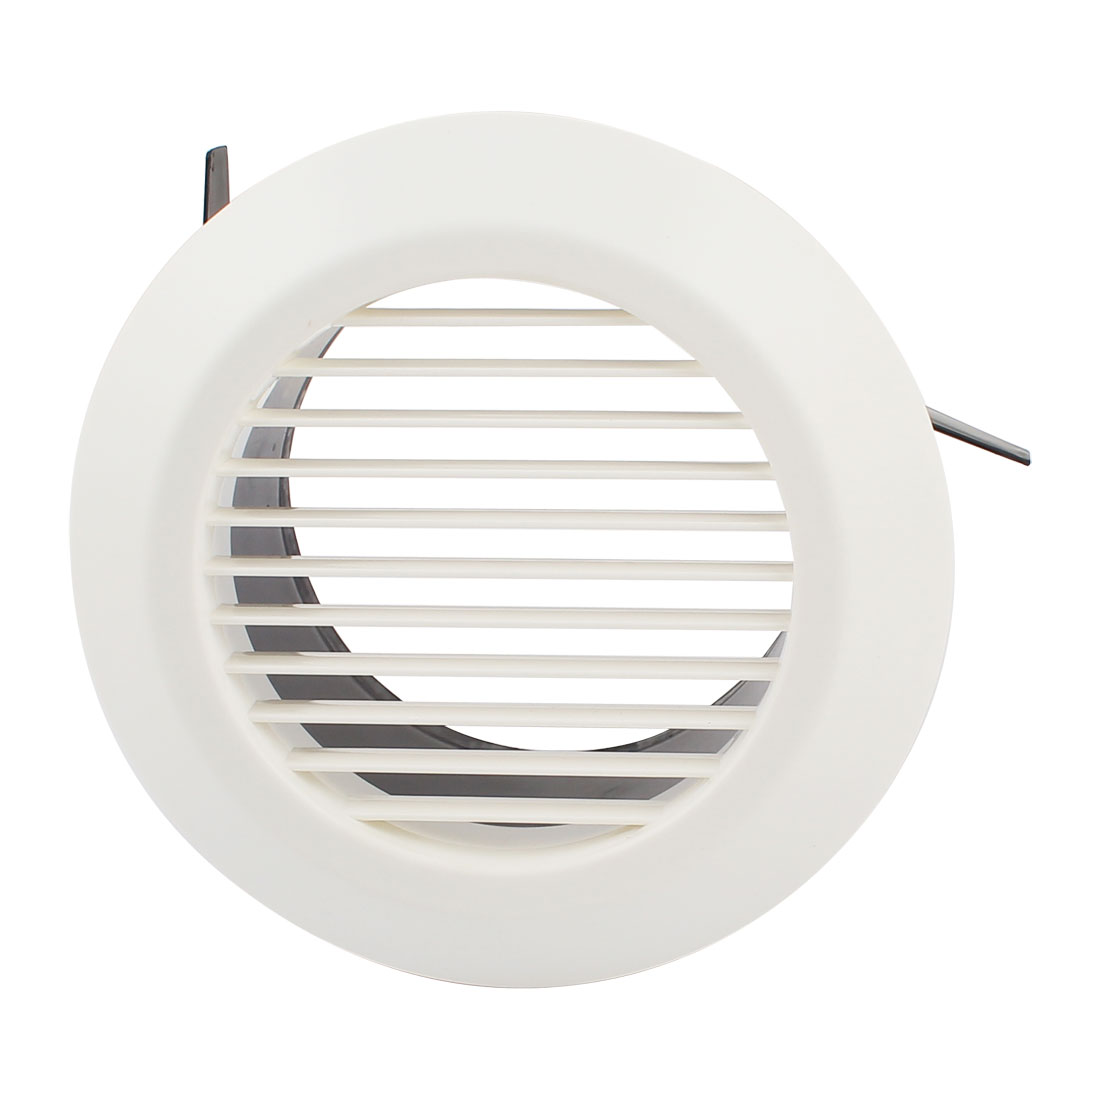 Black White 125mm OD Straight Round Air Grilles Diffusers for Bathroom